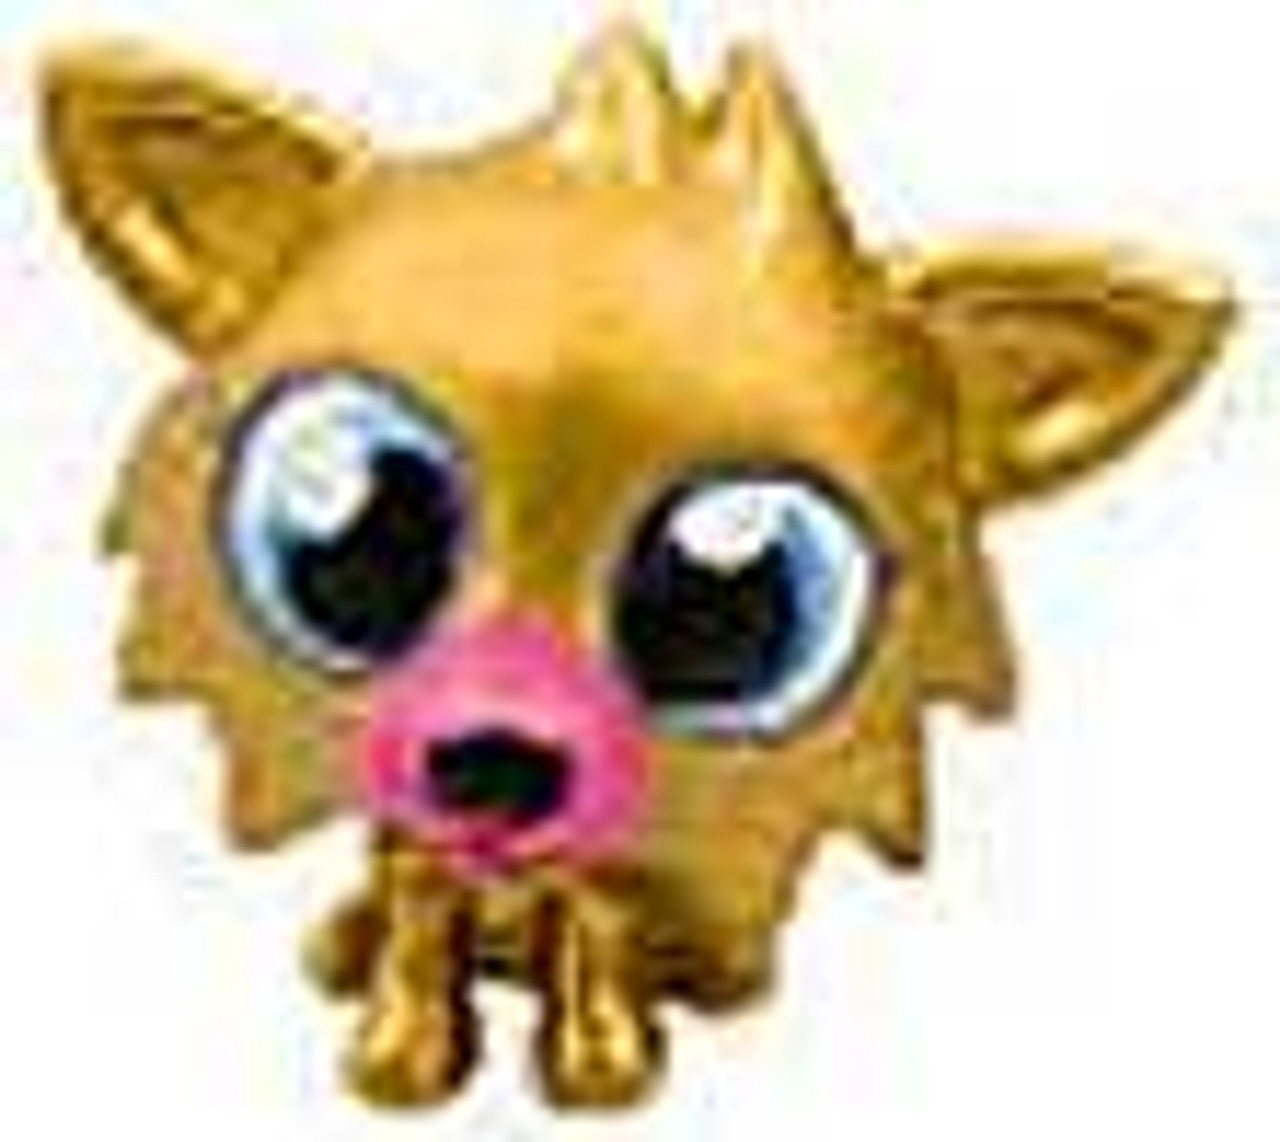 Moshi Monsters Moshlings Gold Limited Edition White Fang 1.5-Inch Mini Figure